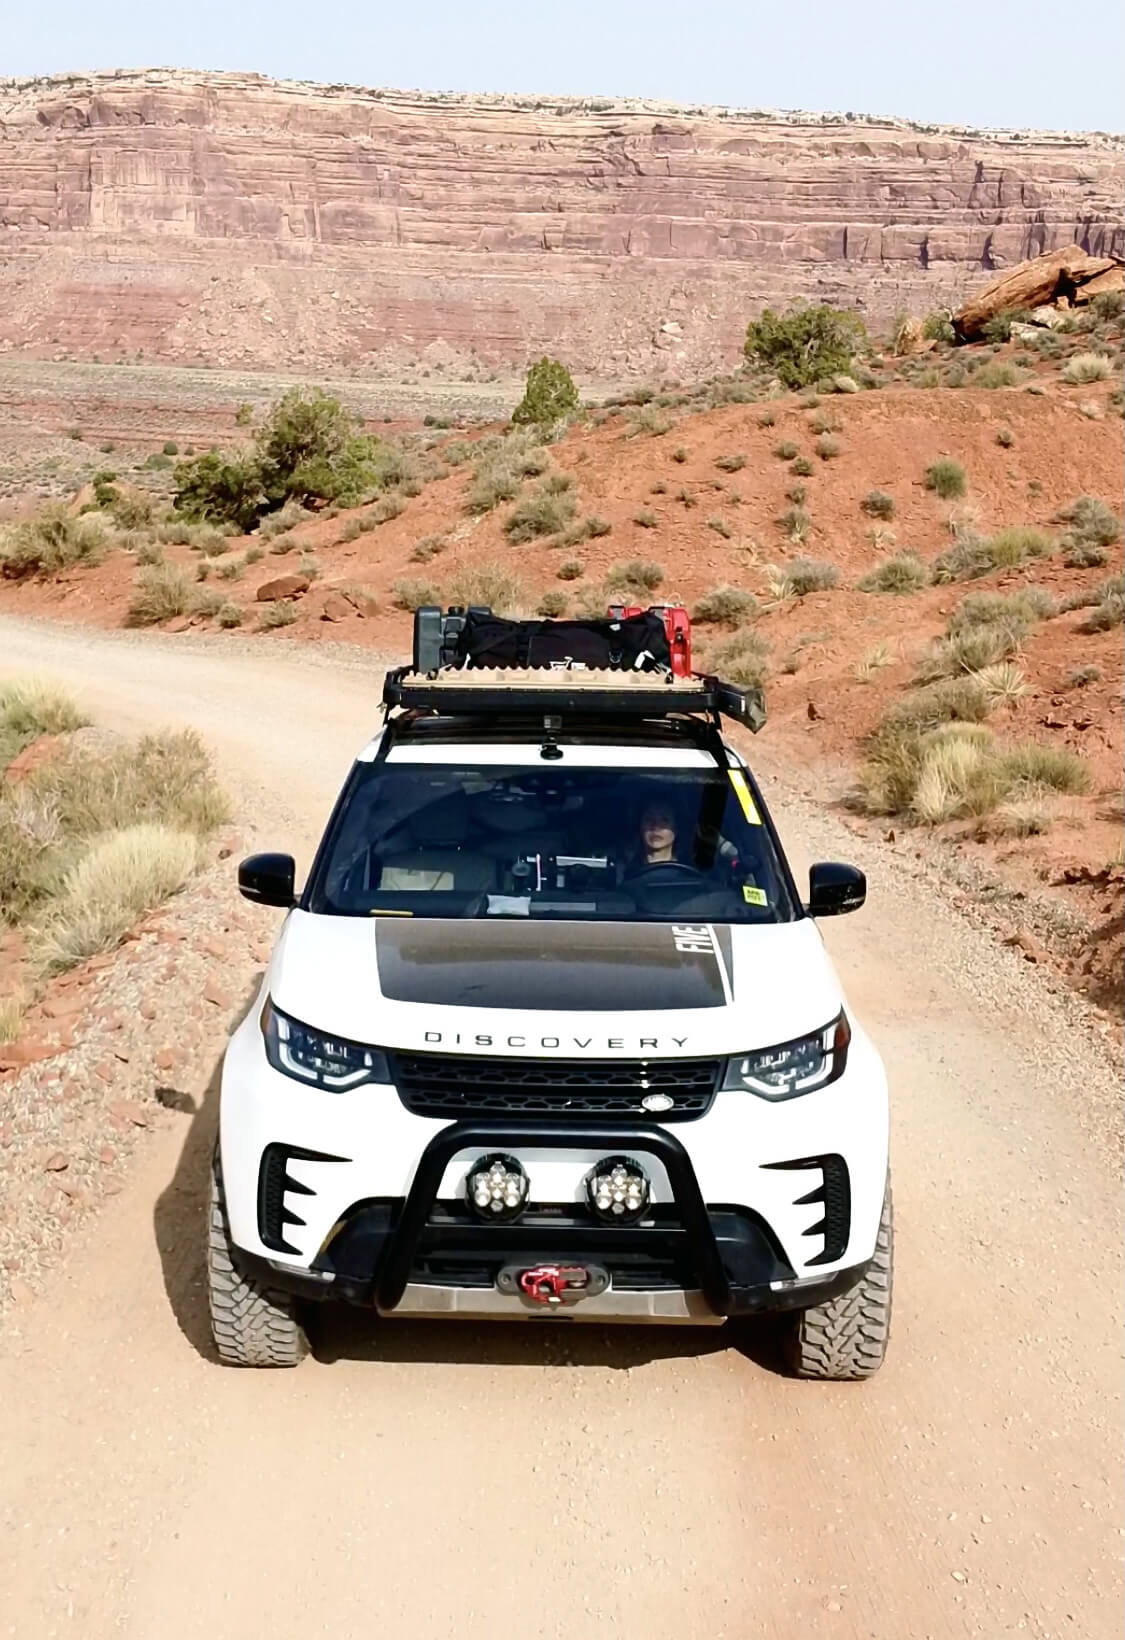 2018 Land Rover Discovery 5 HSE with off-road accessories